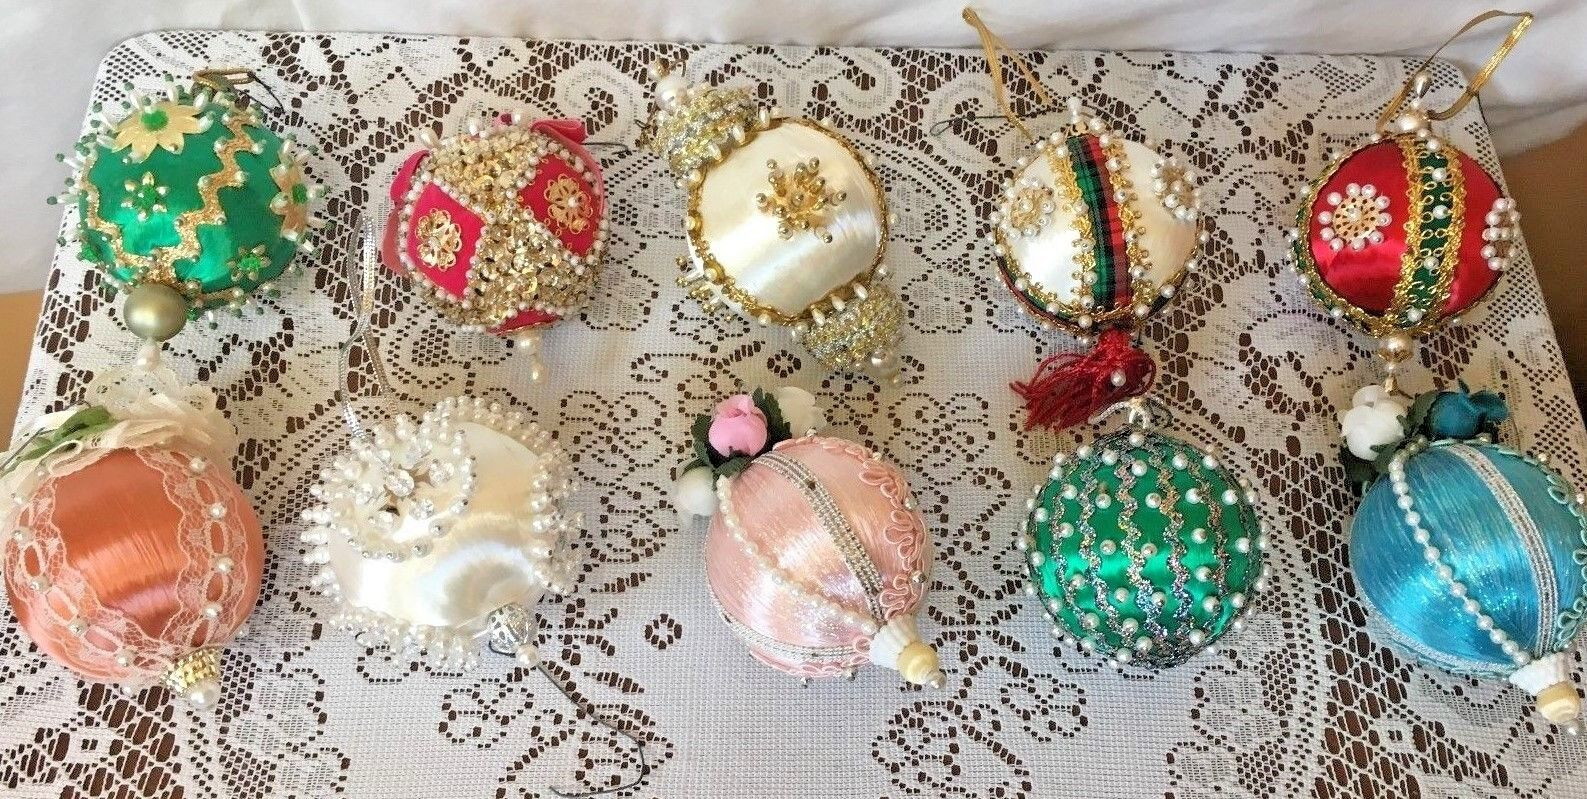 Beaded ornaments satin balls flower ornaments colorful lot of 10